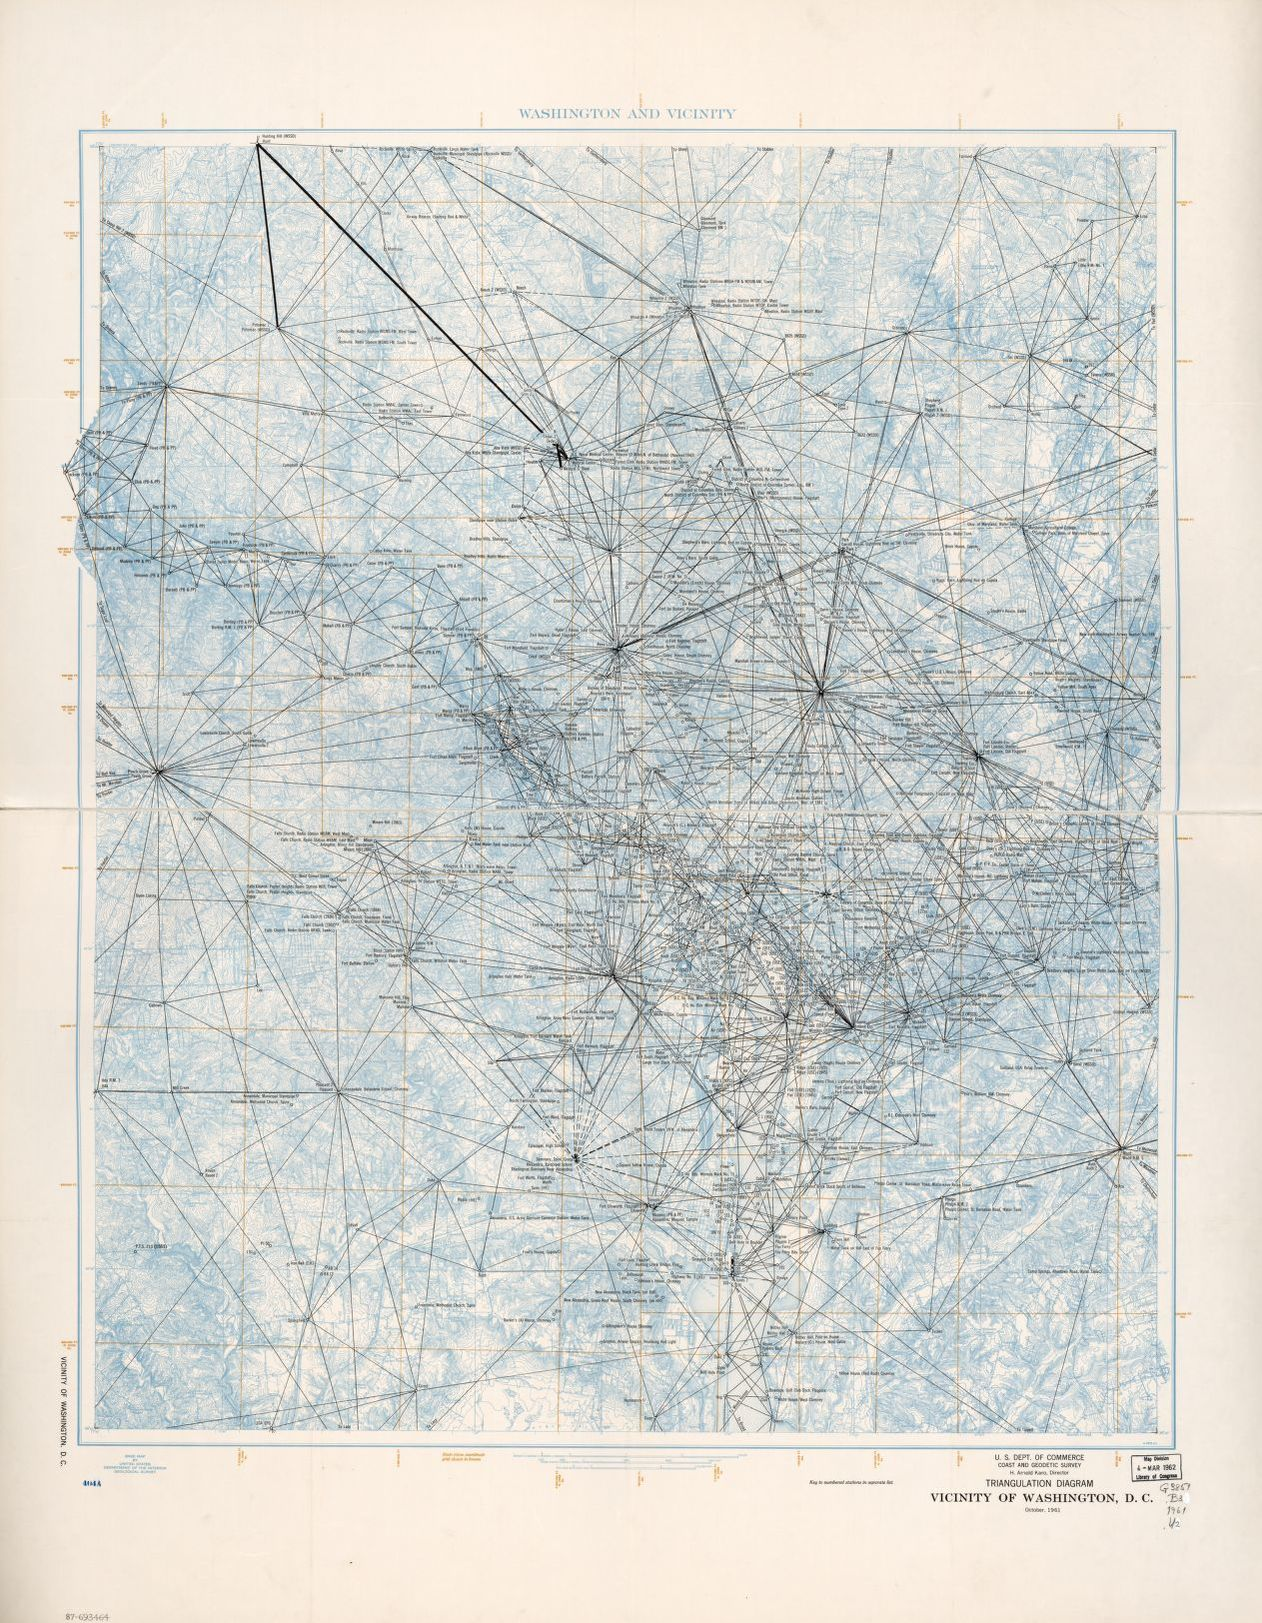 hight resolution of triangulation diagram vicinity of washington d c october 1961 library of congress